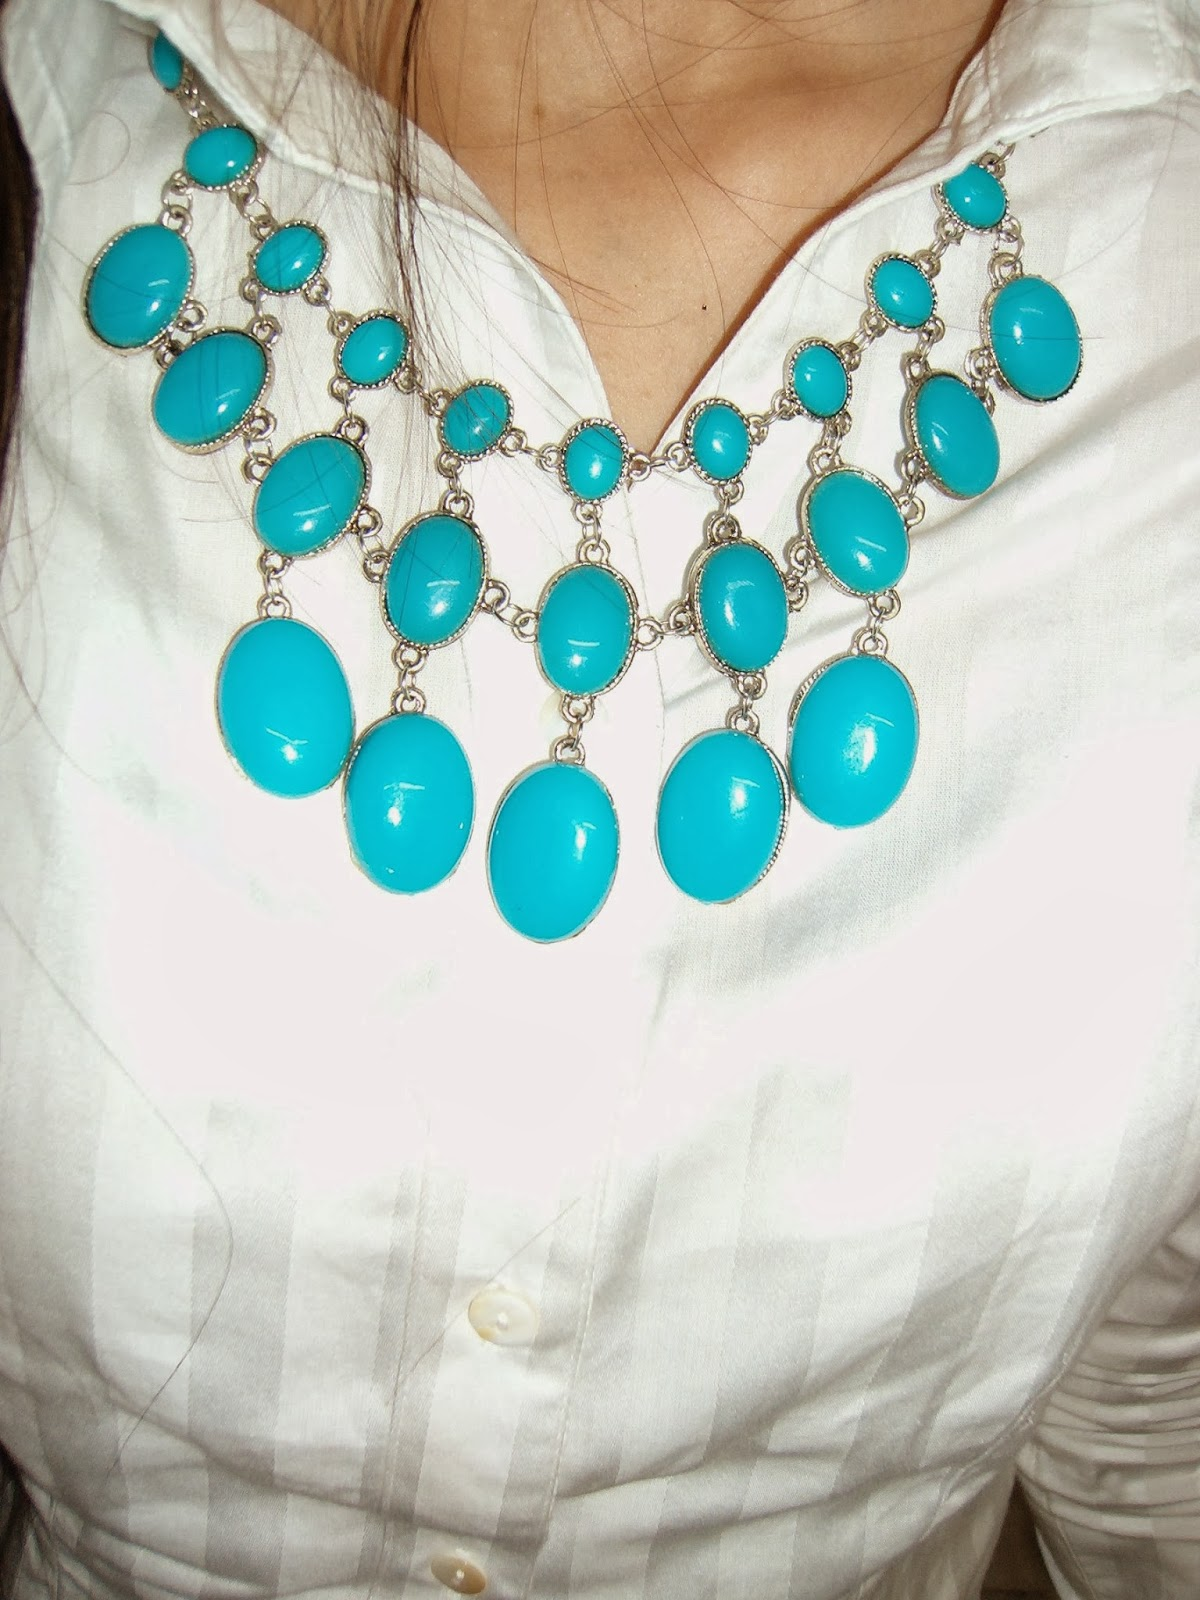 mint necklace, statement necklace, white shirt, mint jewelry, how to wear statement accessories